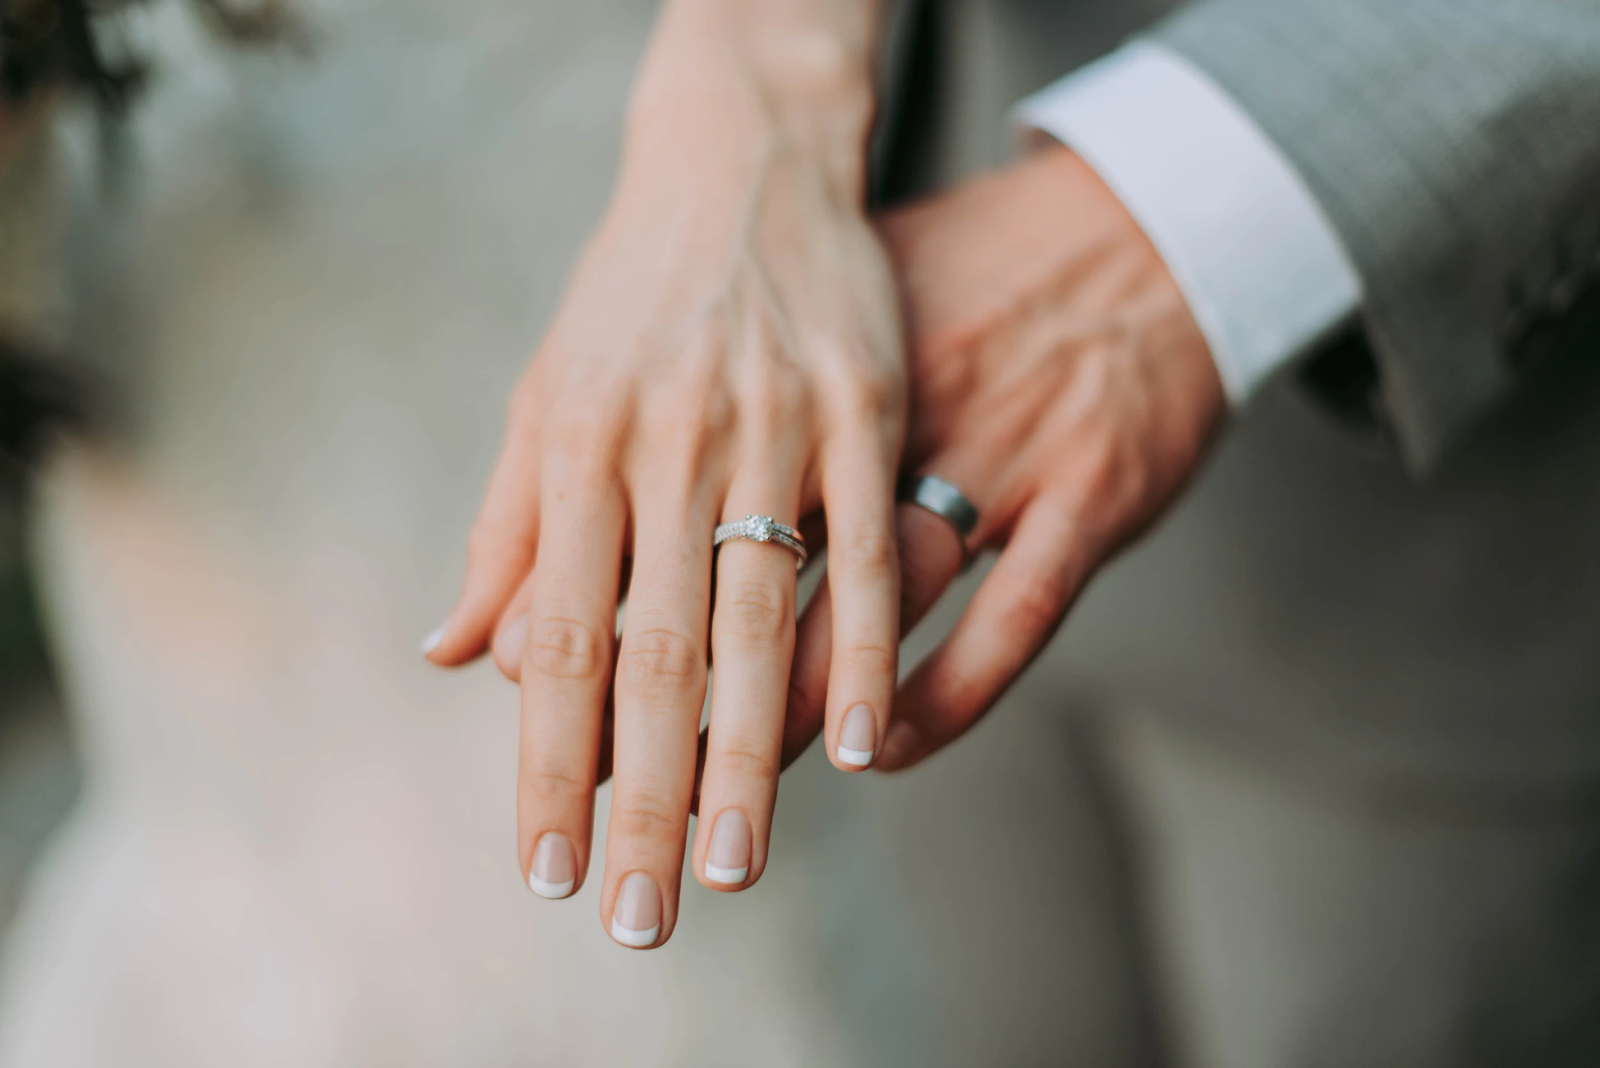 Engagement Rings vs. Wedding Rings: A Comprehensive Guide to The Differences